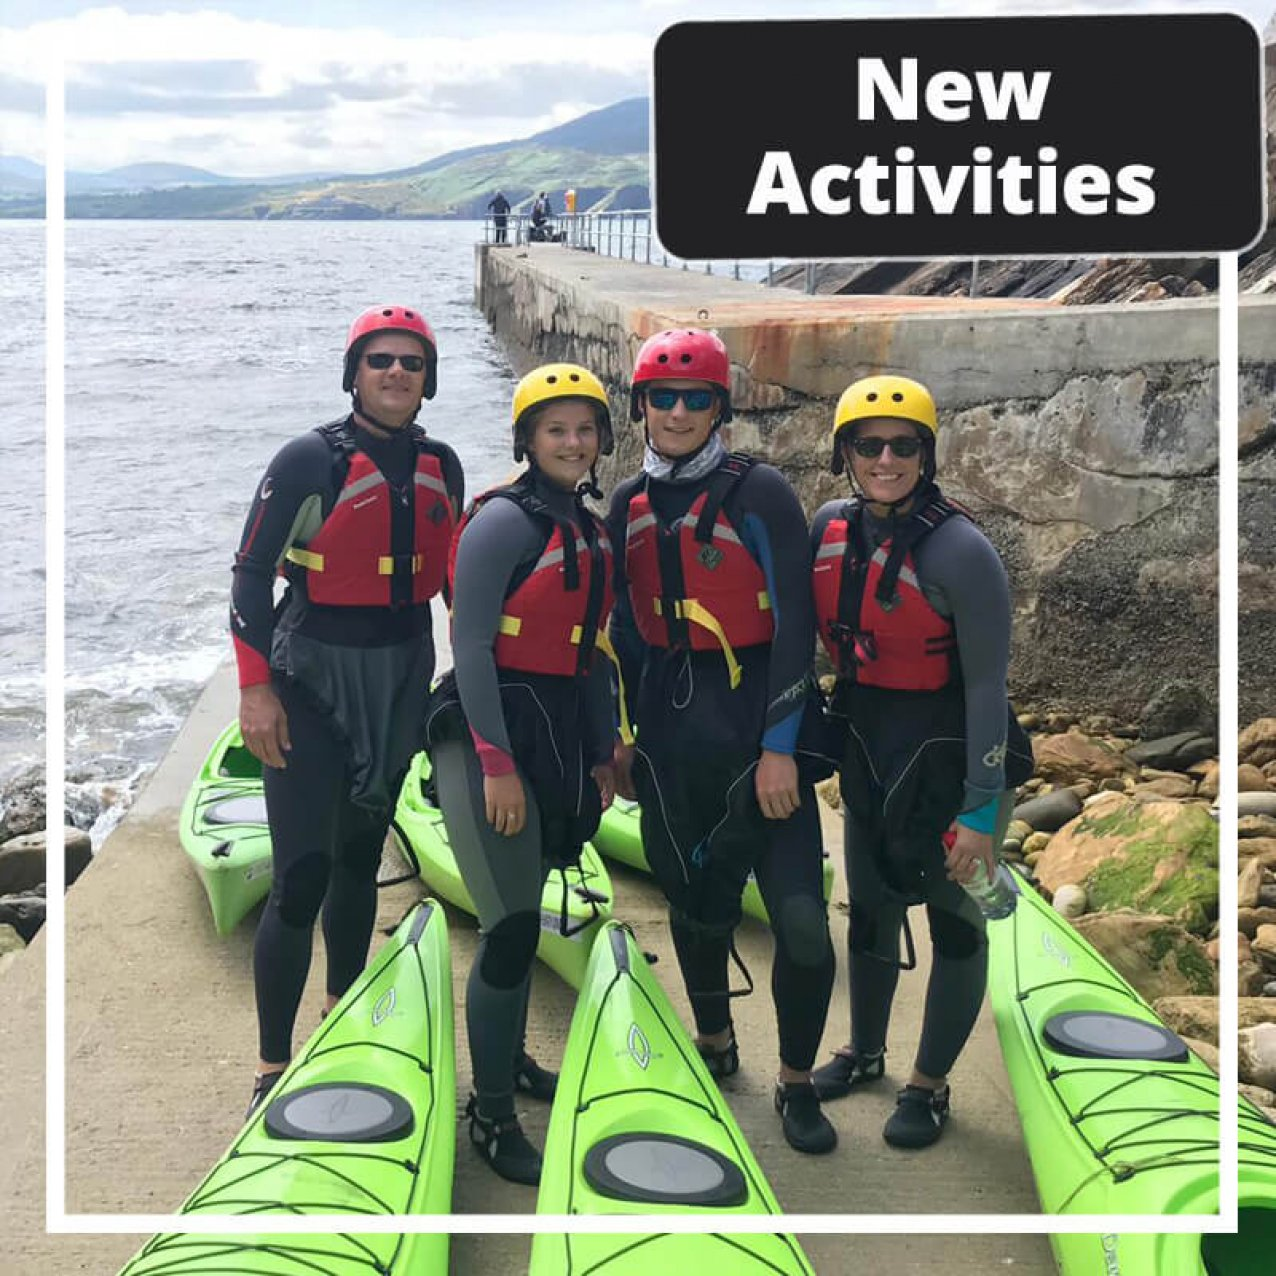 New Activities tour group with kayaks in Donegal